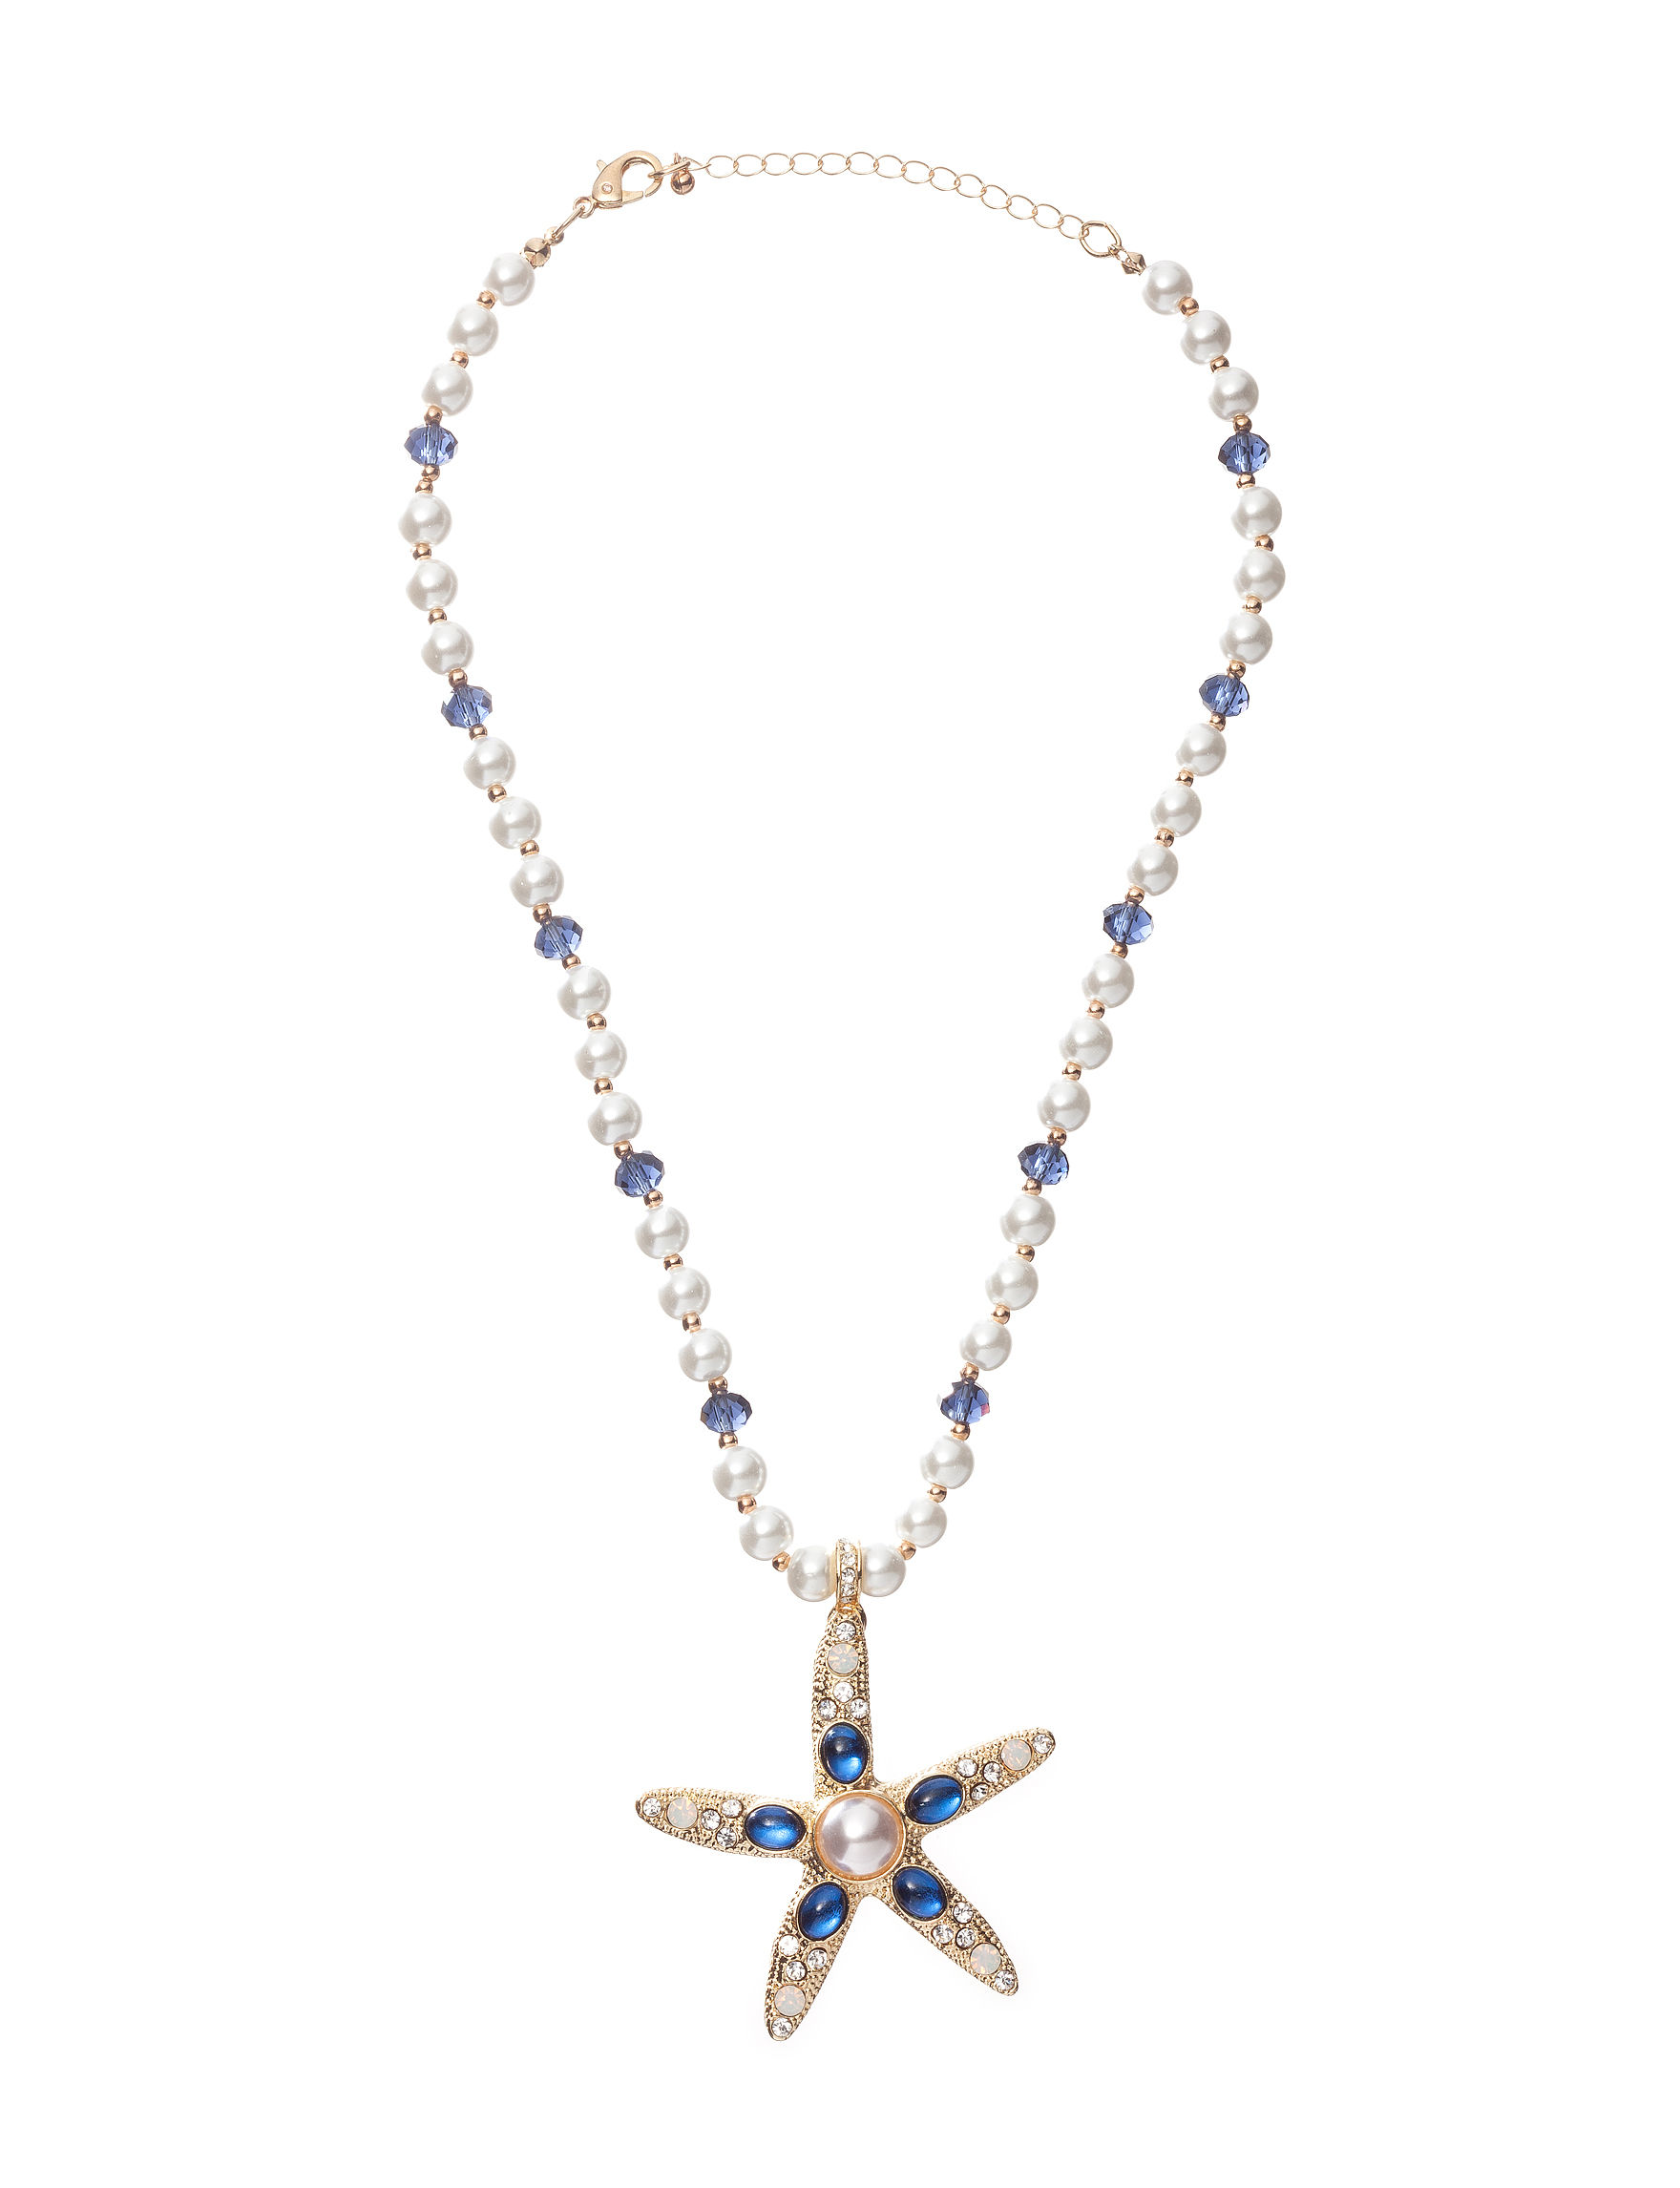 Hannah Pearl Necklaces & Pendants Fashion Jewelry